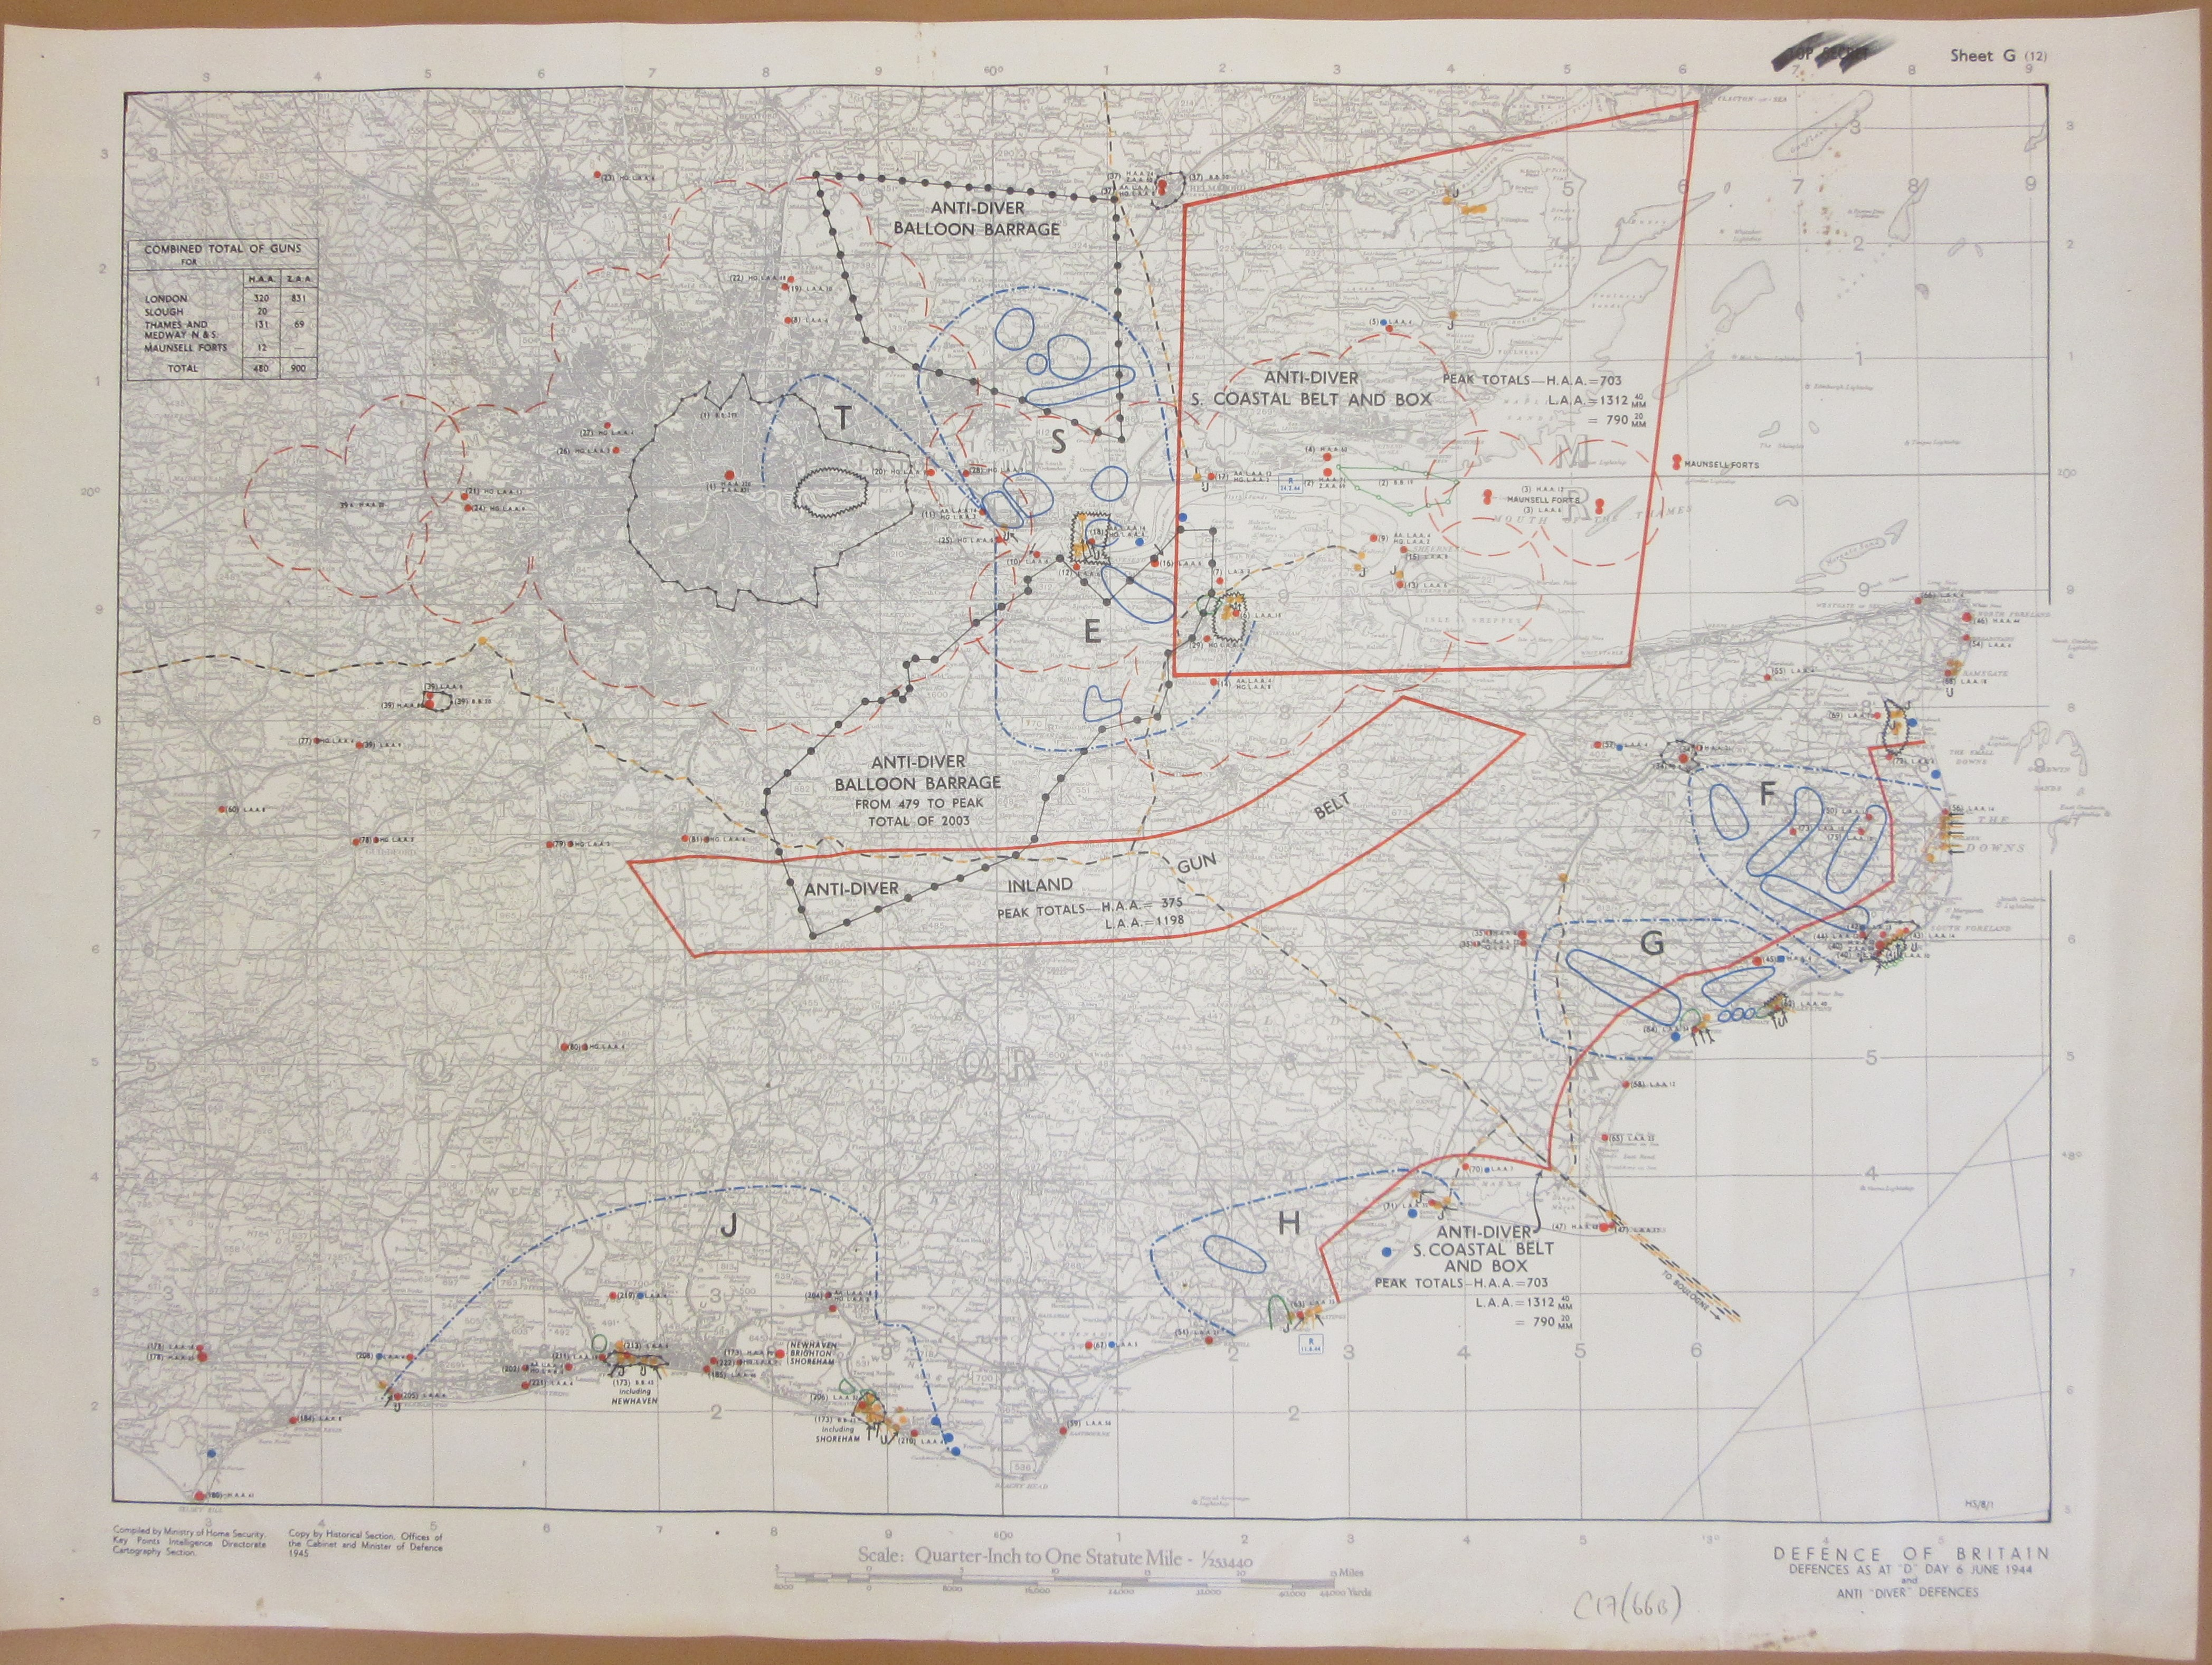 Bodleian Map Room Blog | Items of interest from the